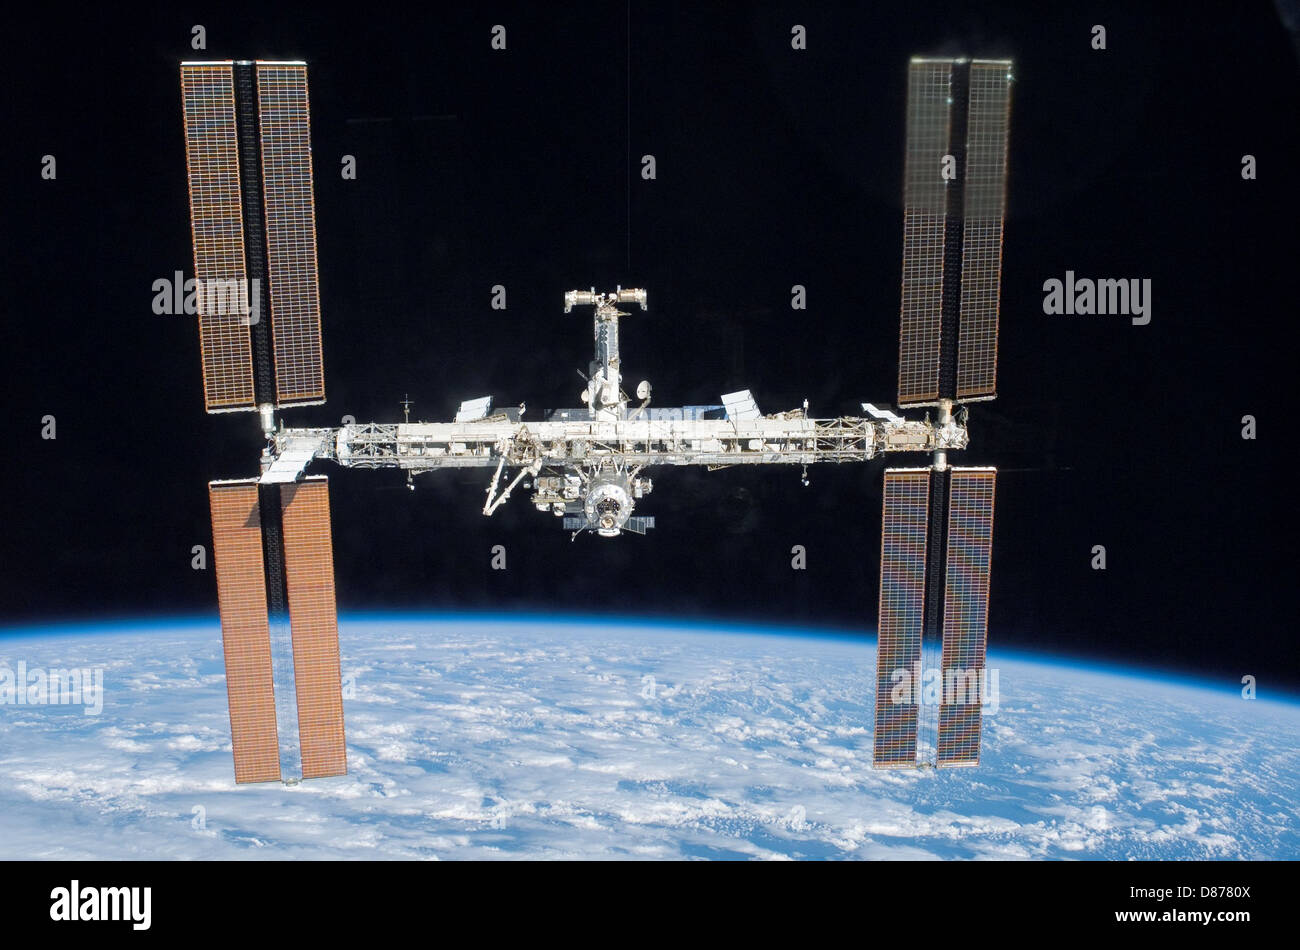 ISS after STS-117 in June 2007.jpg - Stock Image